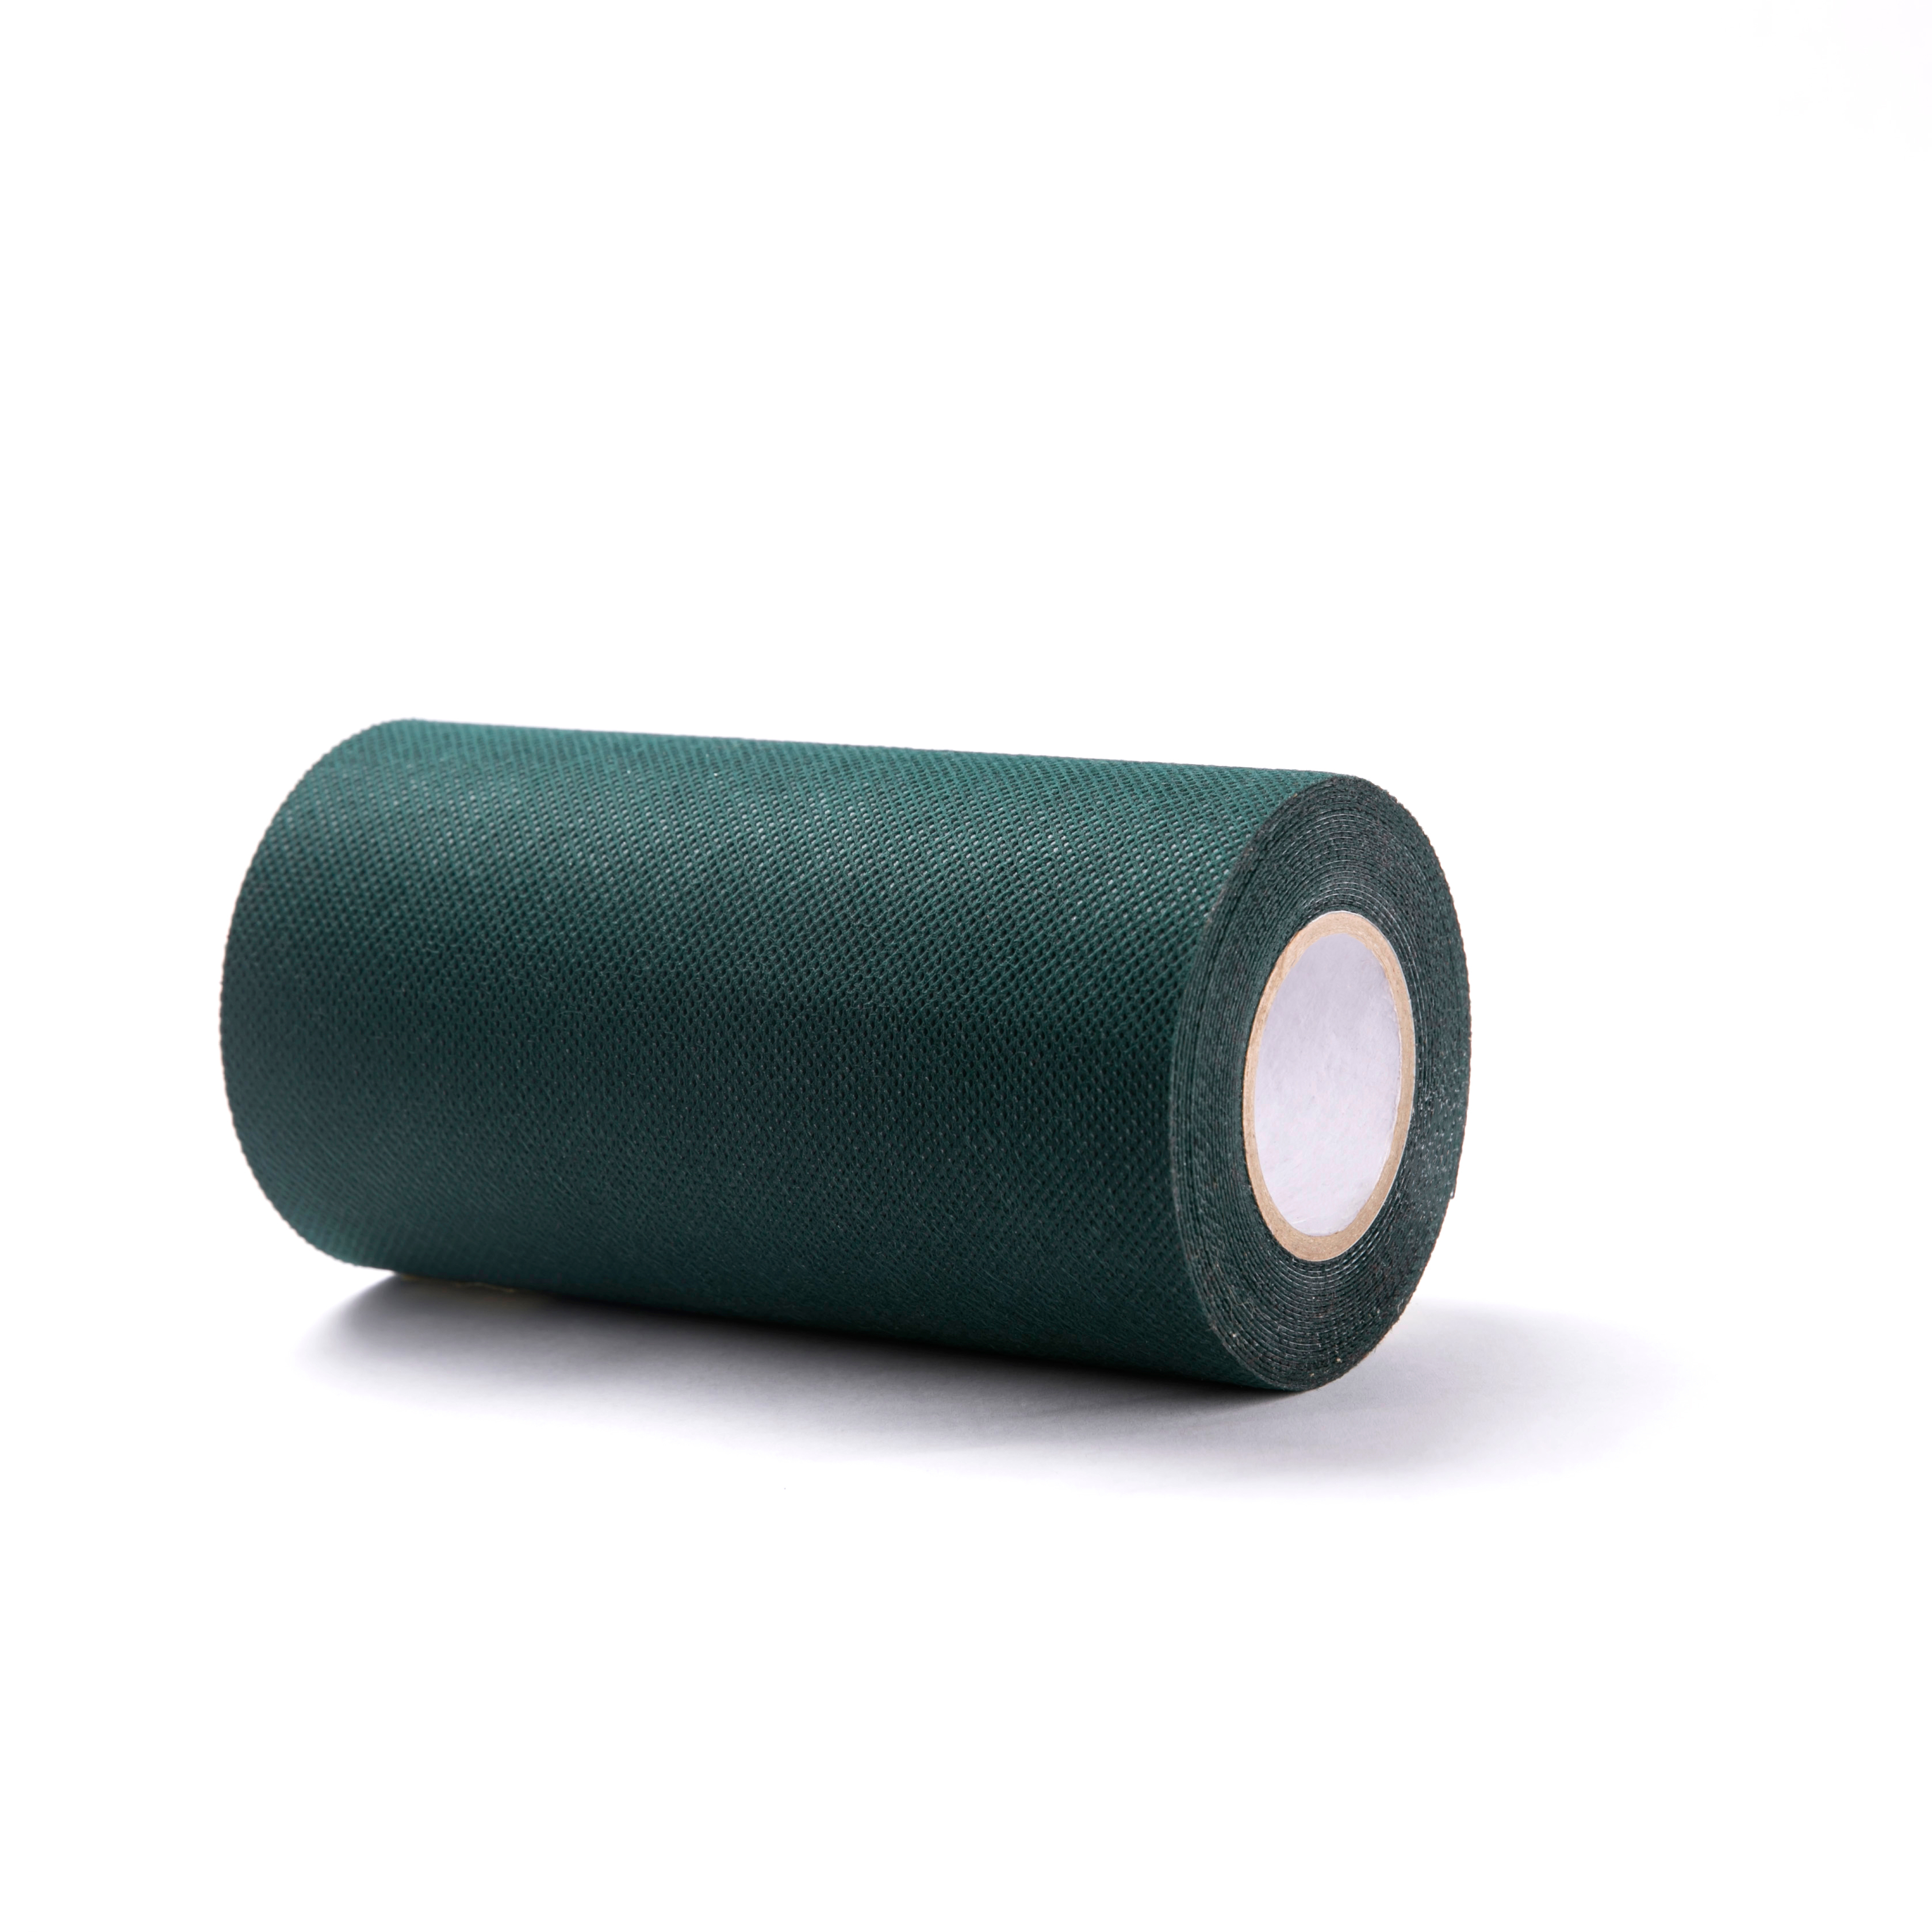 Soft feel joint tape for artificial grass